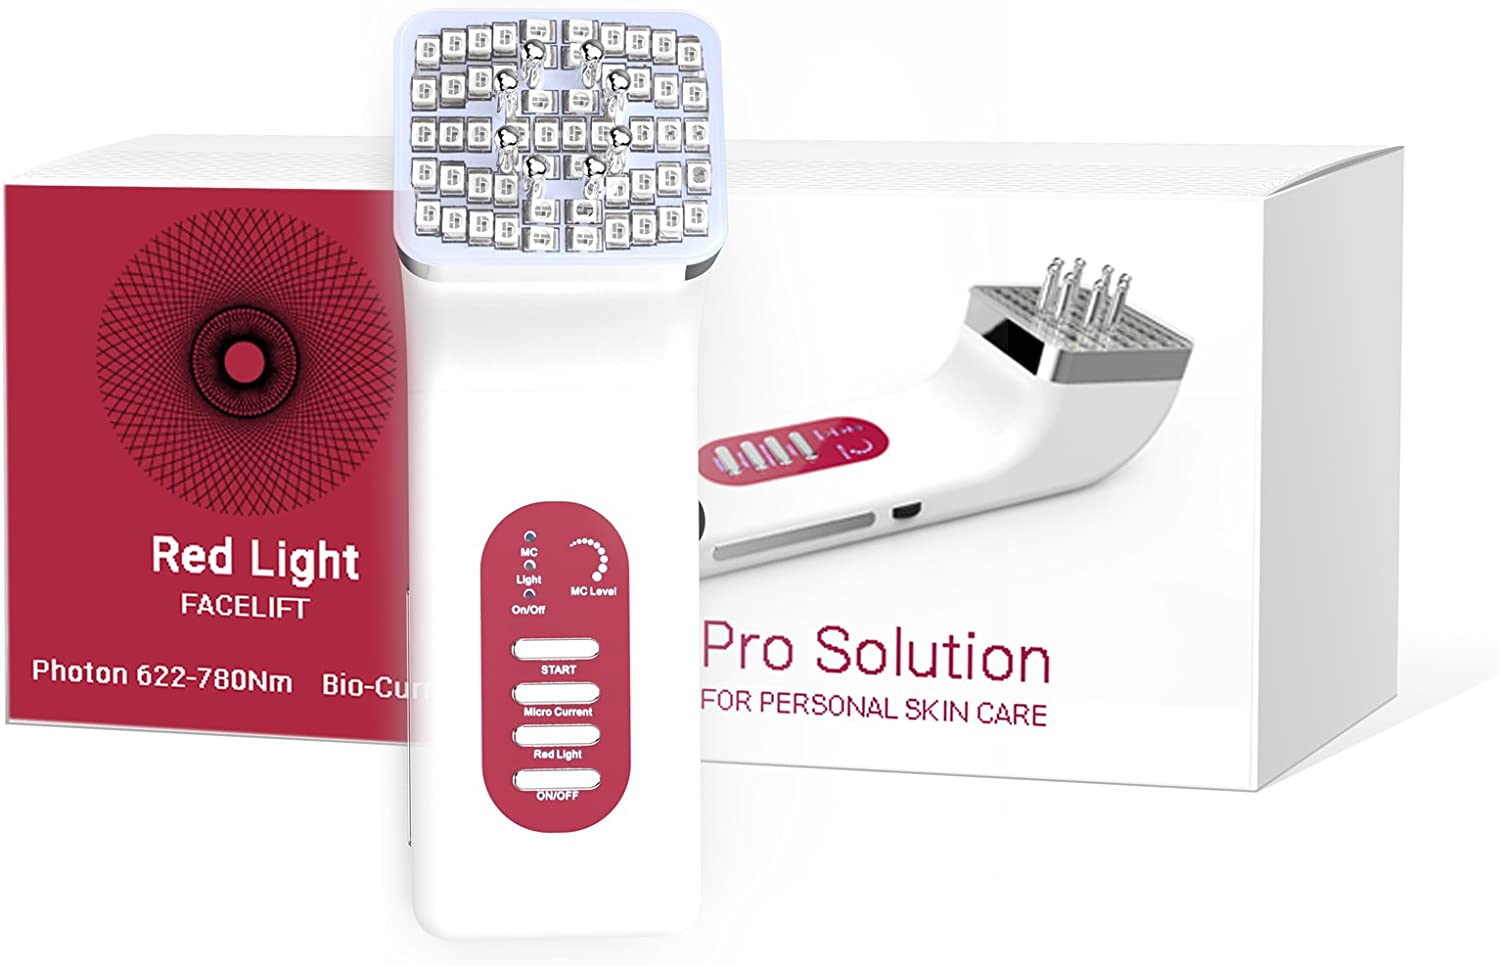 Anti-Wrinkle Microcurrent LED Light Facial Massager, 3 in 1 Skin Firming Device with Red Heat and Bio Current